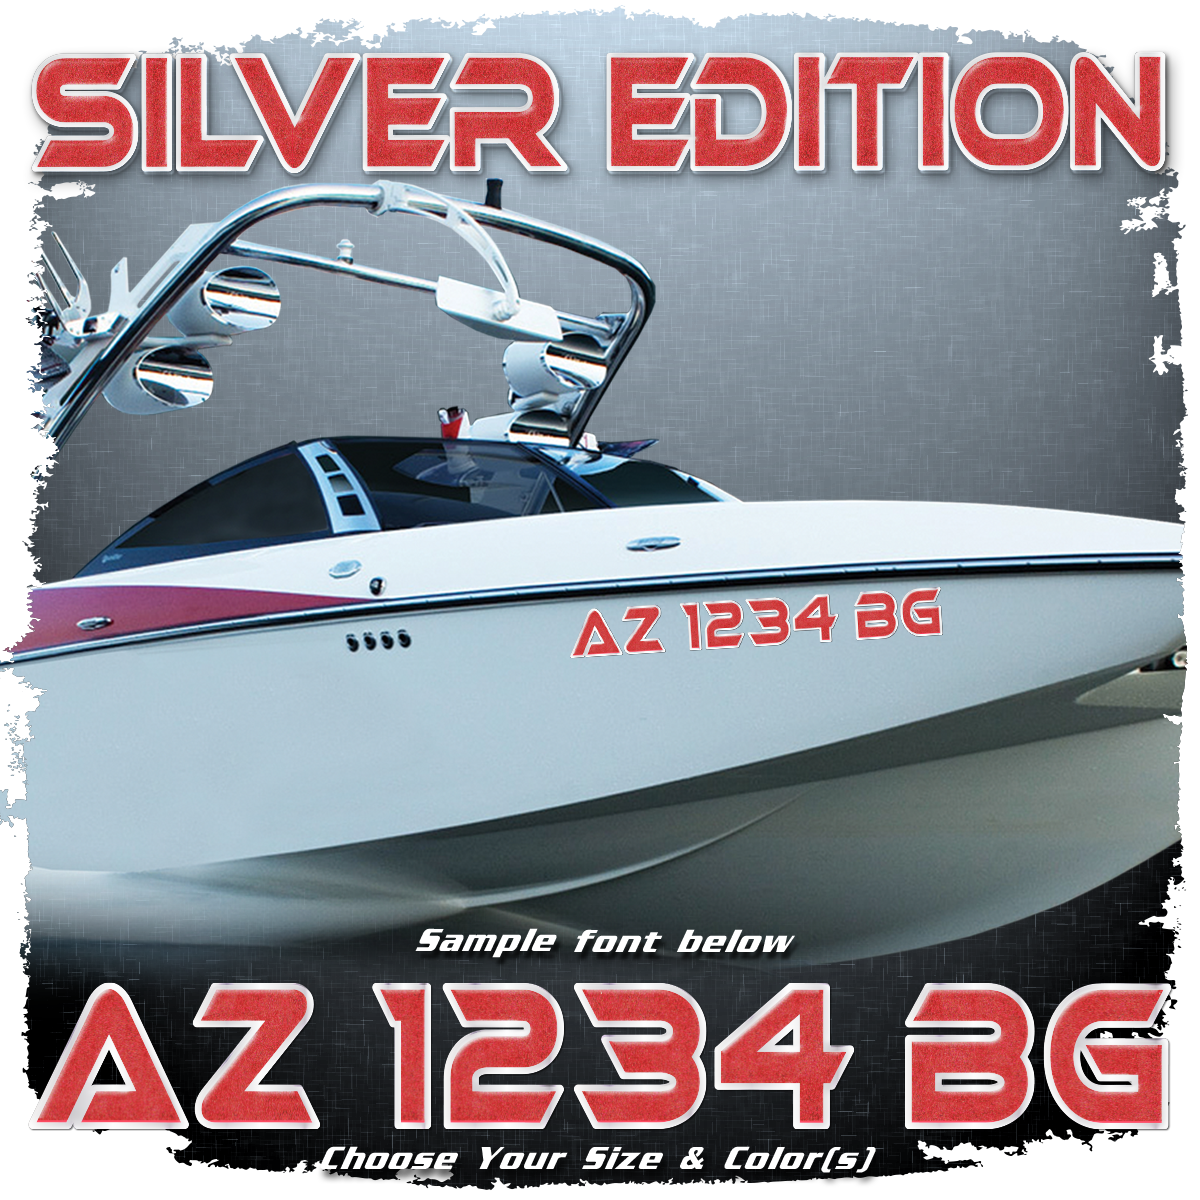 Malibu Silver Edition Registration, 2007-08, Choose Your Own Colors (2 included)